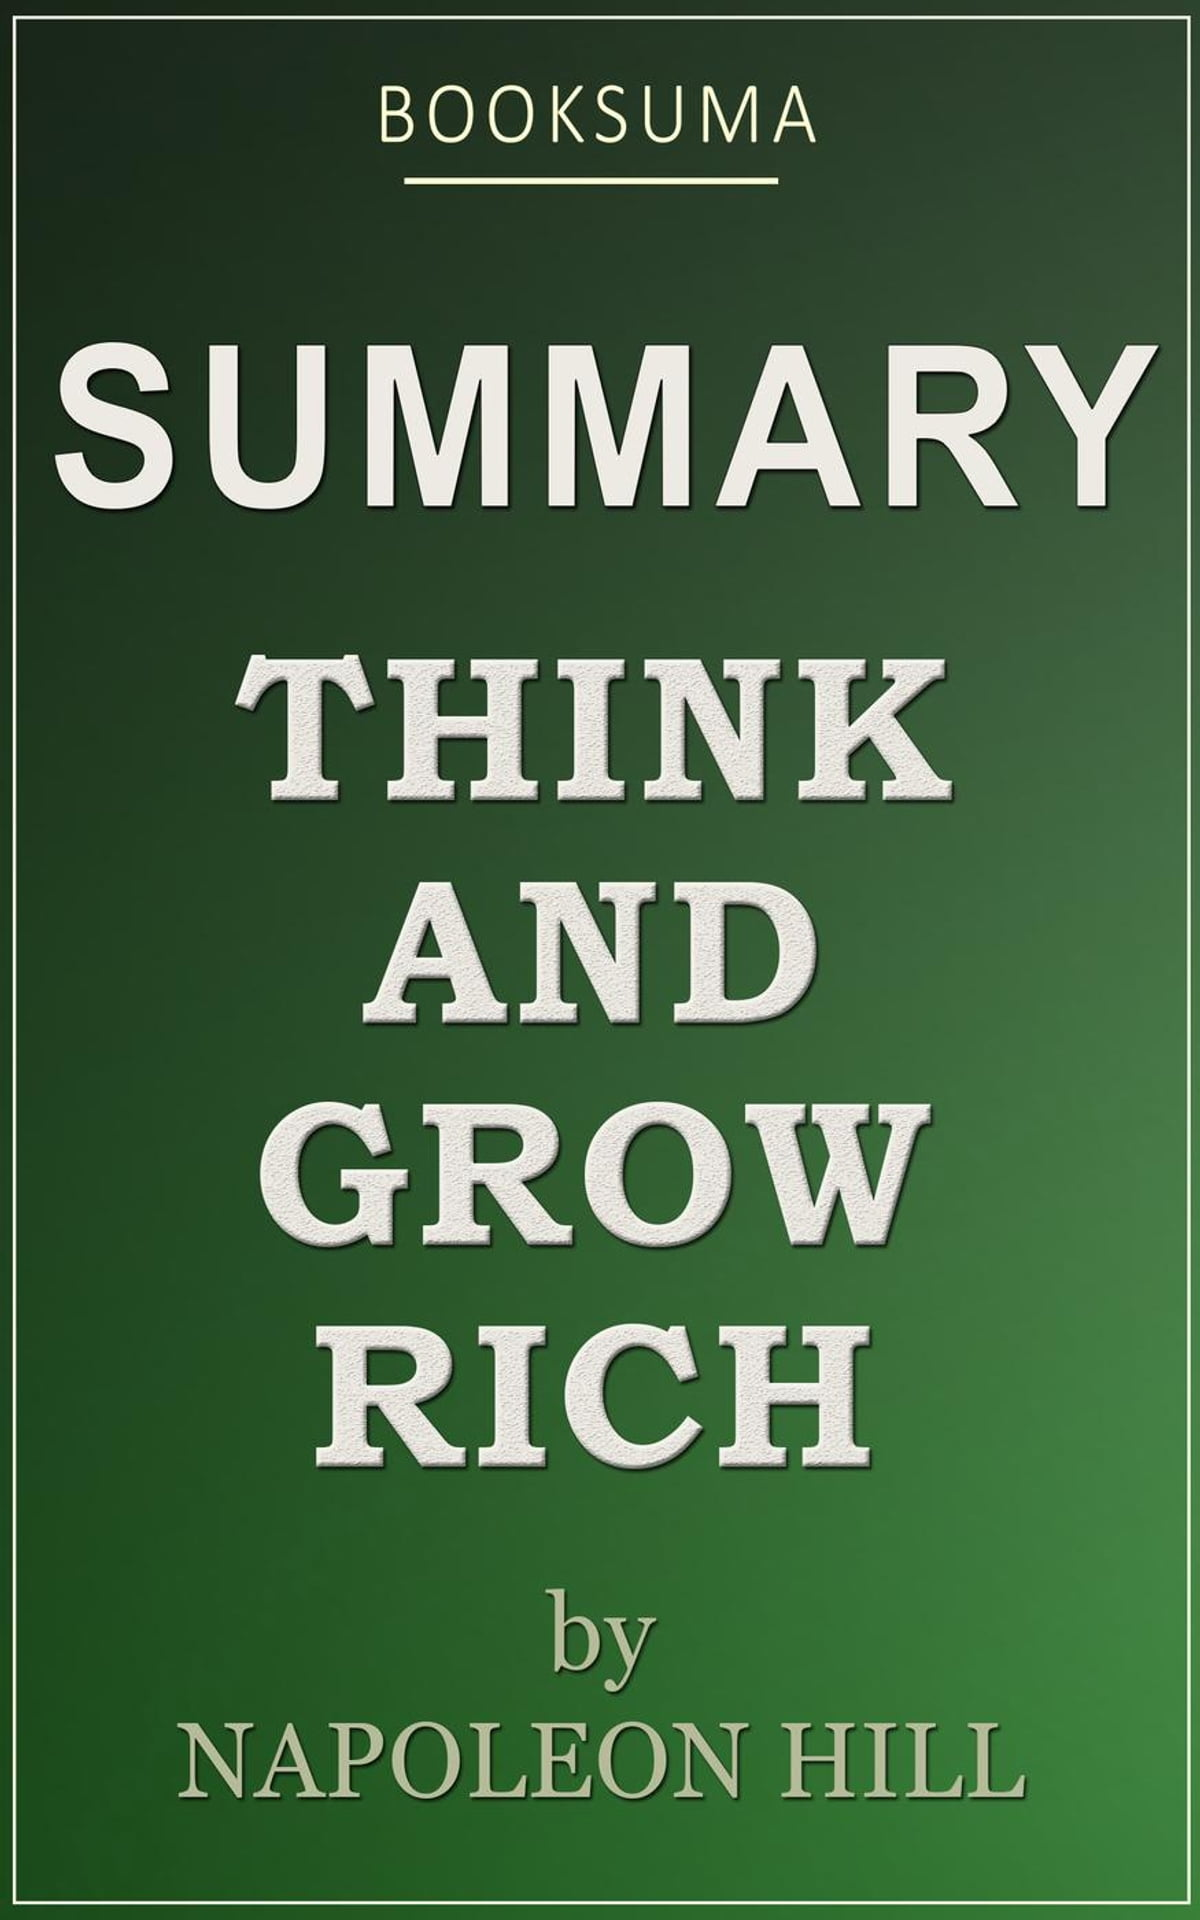 Napoleon Hill Libros Summary Think And Grow Rich By Napoleon Hill Ebook By Booksuma Rakuten Kobo